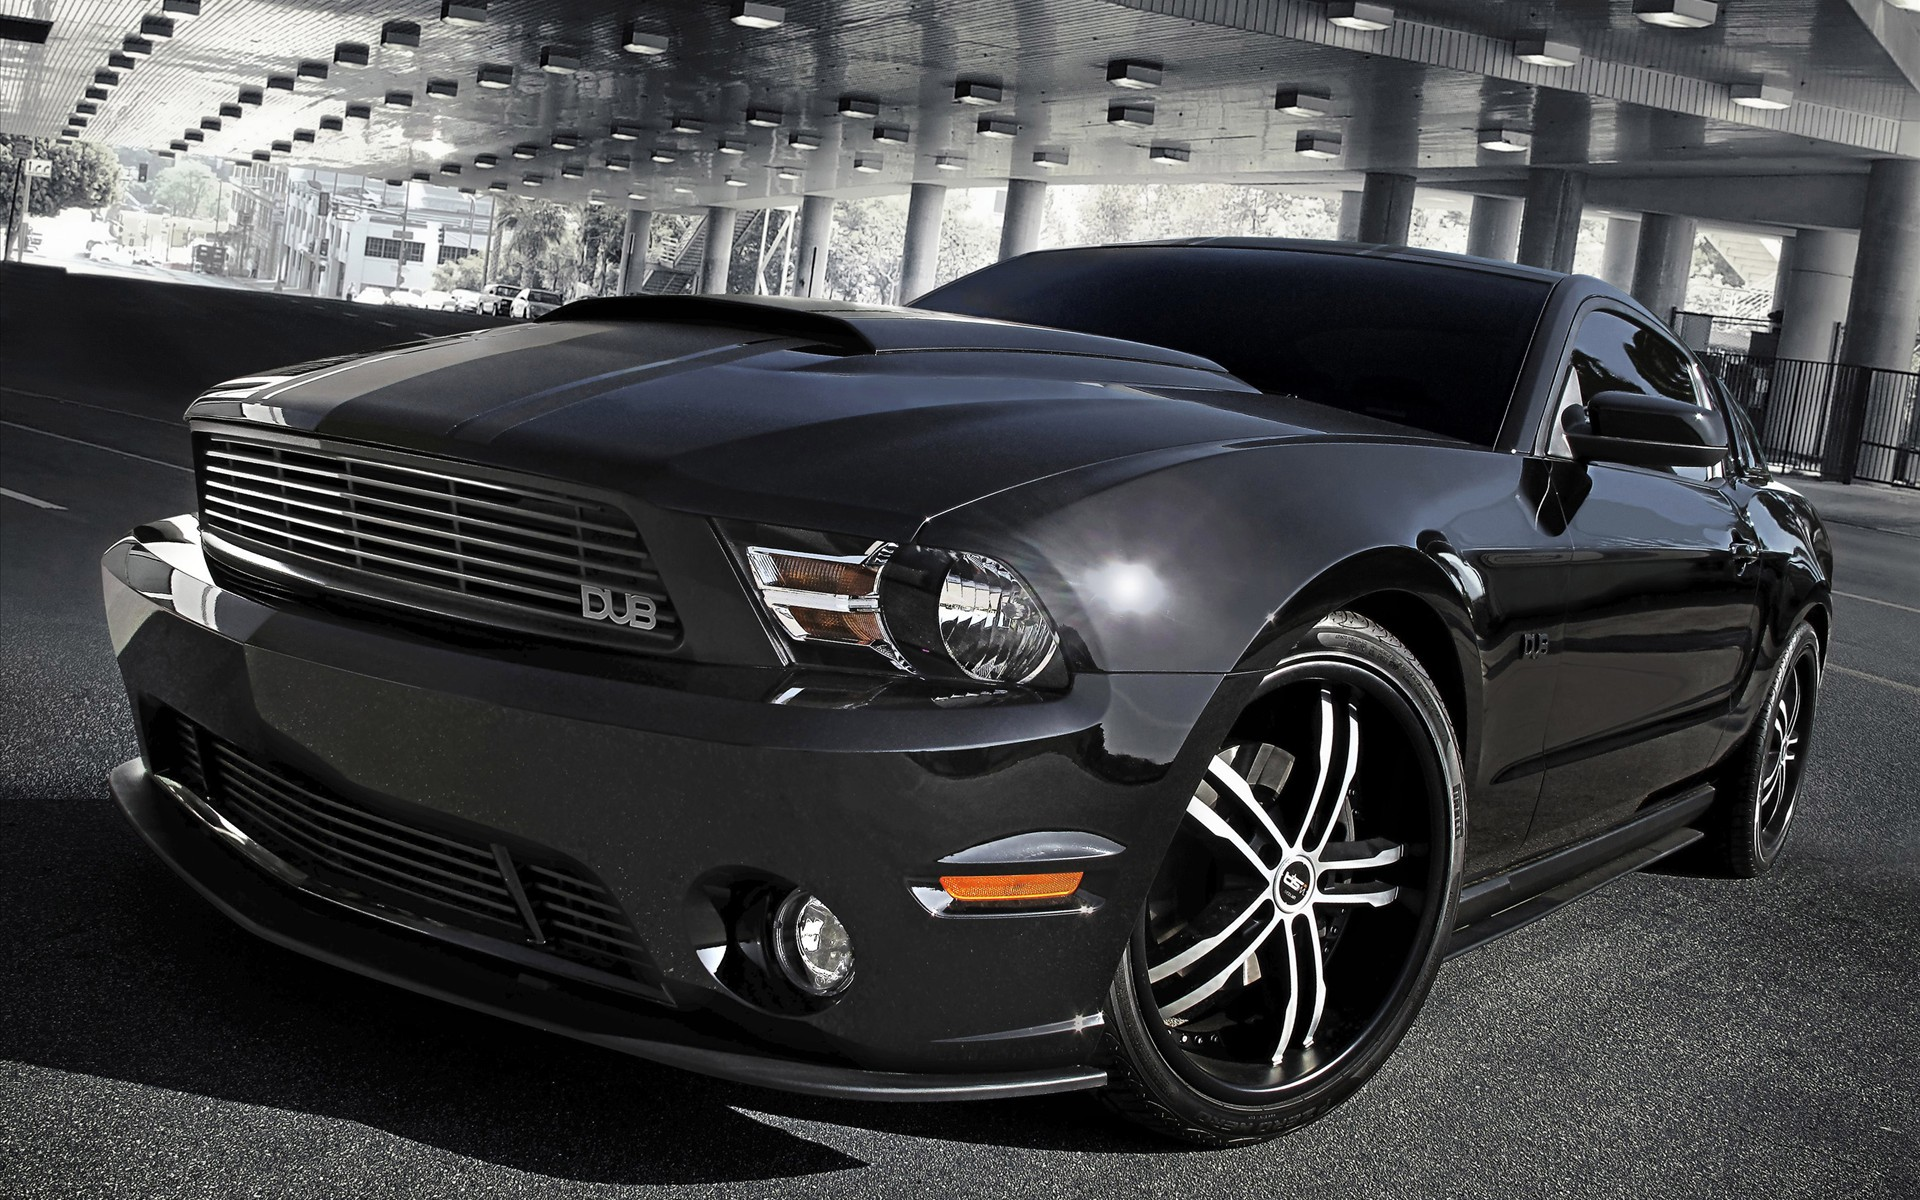 Ford Mustang DUB Edition Exclusive HD Wallpapers 5315 1920x1200